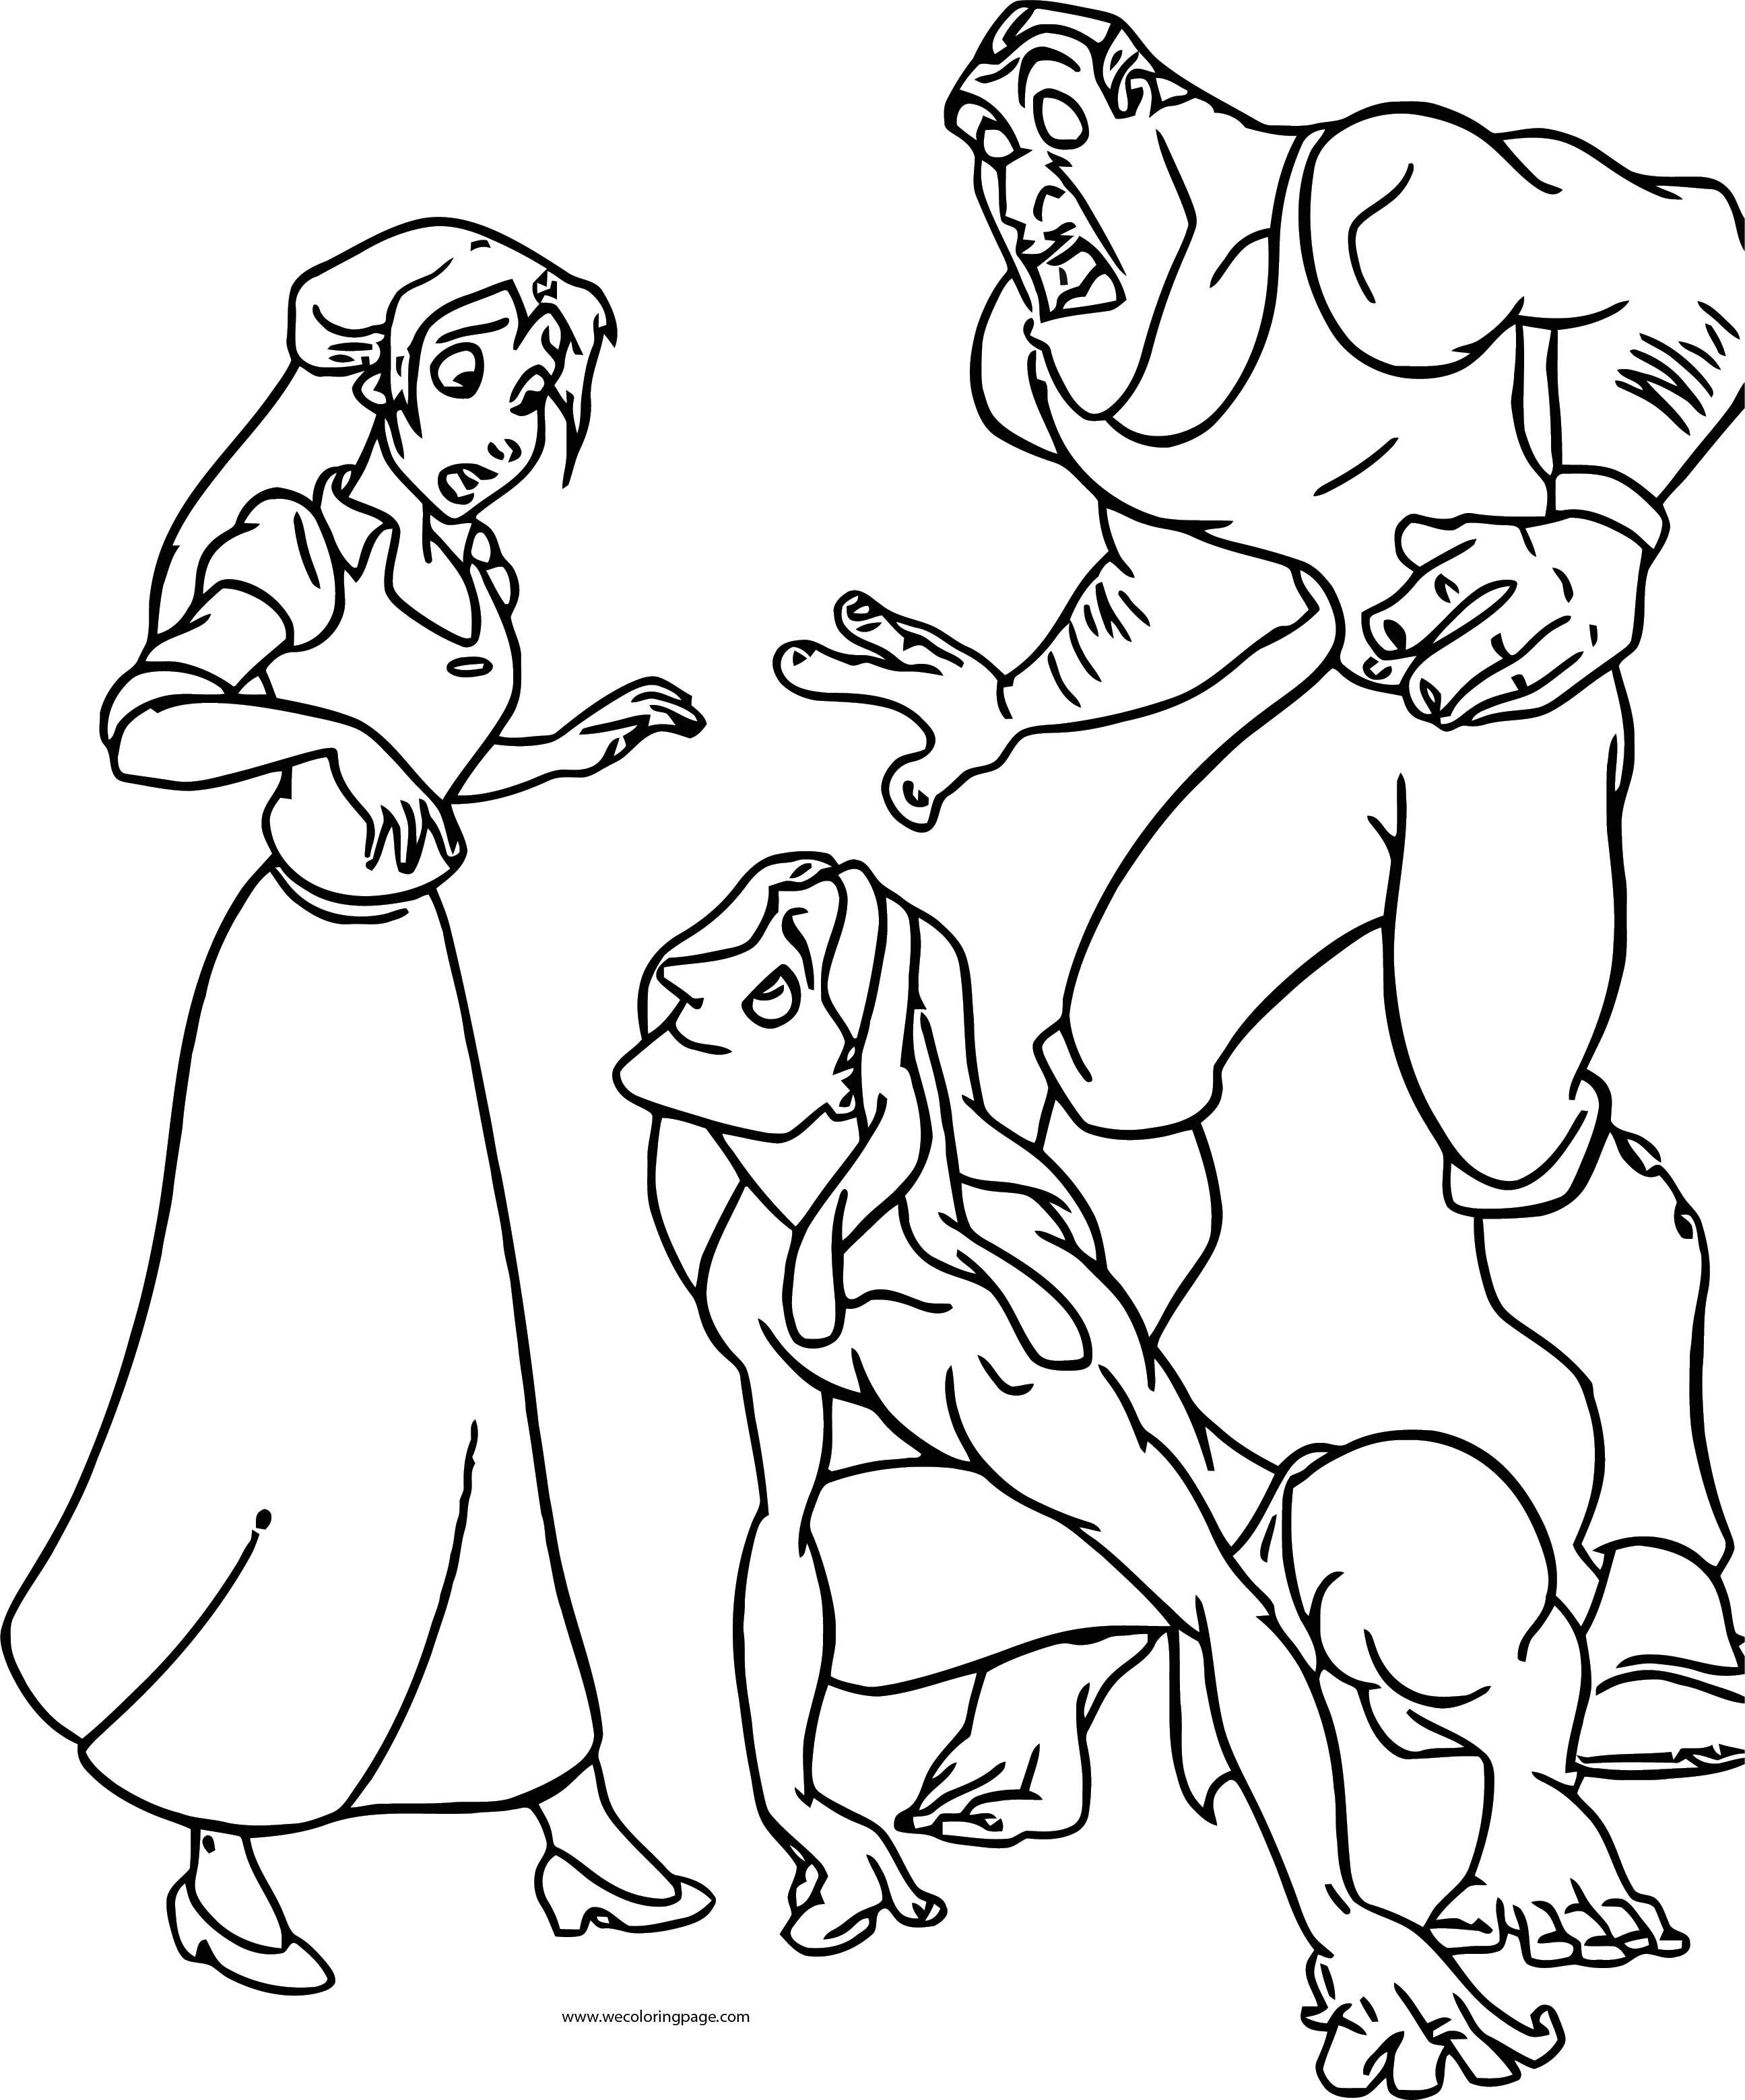 Tarzan Jane Gang Clayton Coloring Page